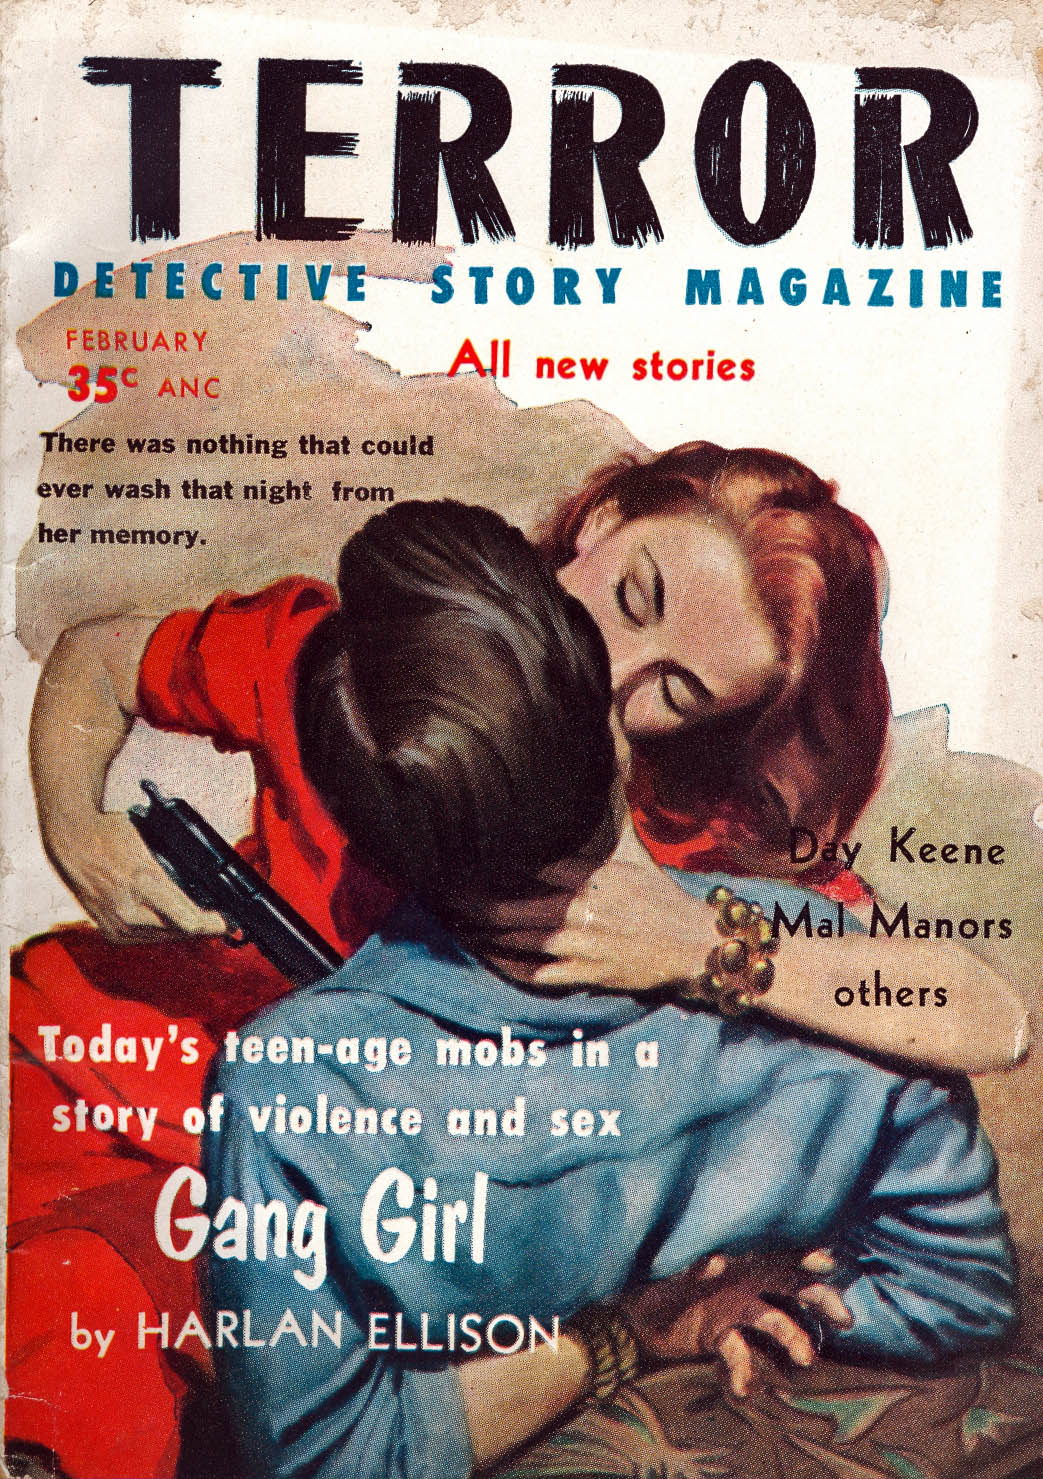 Trapped Detective Story Magazine Feb. 1963 NEVER TRUST A RICH BITCH Henry Kane